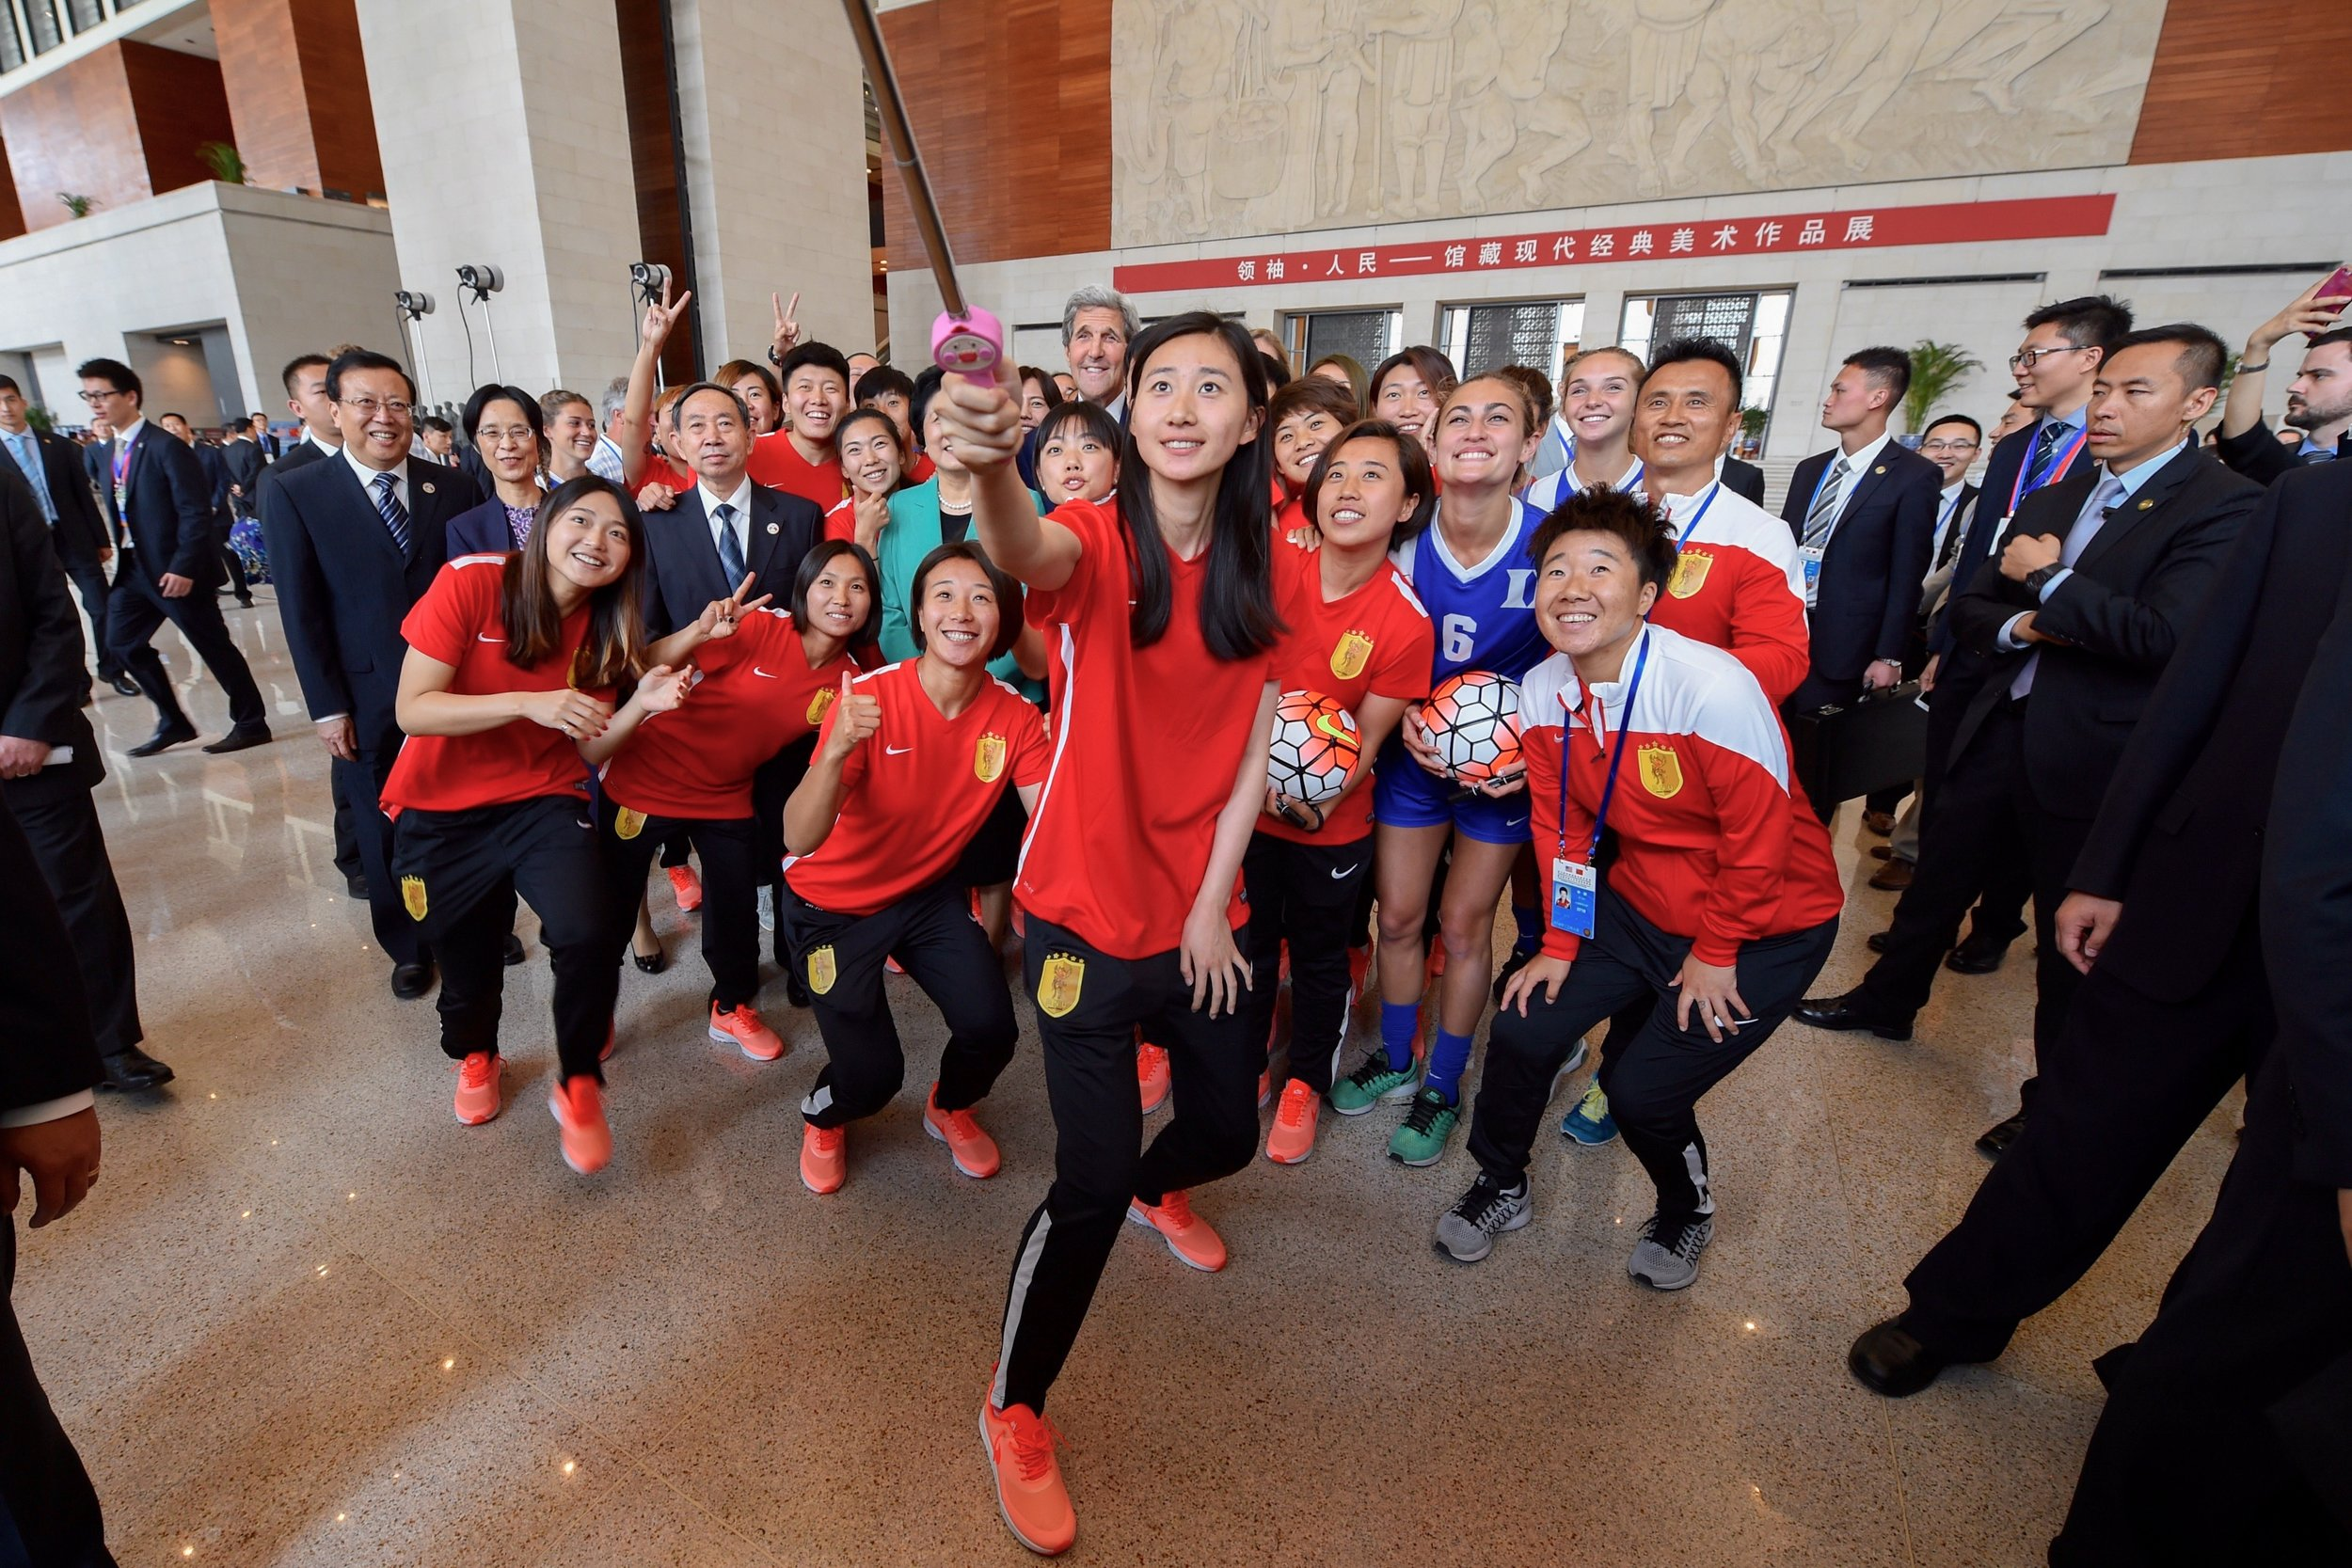 A photo with a Chinese soccer team during a visit to the National Museum on Tiananmen Square.